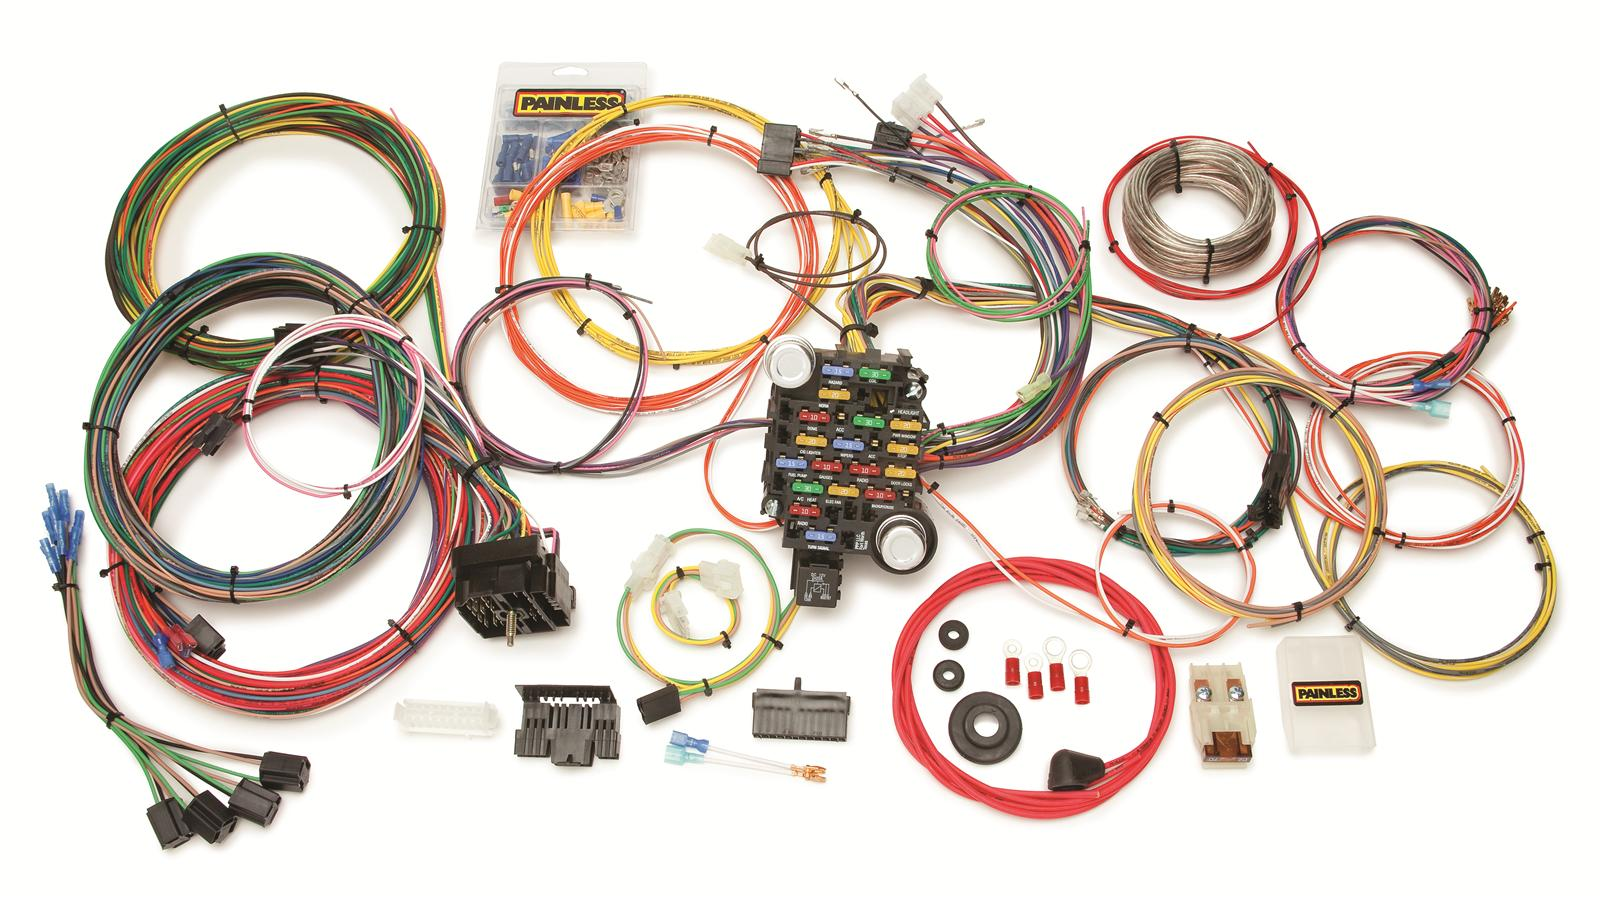 prf 10205_xl painless performance gmc chevy truck harnesses 10205 free gm truck wiring harness at crackthecode.co